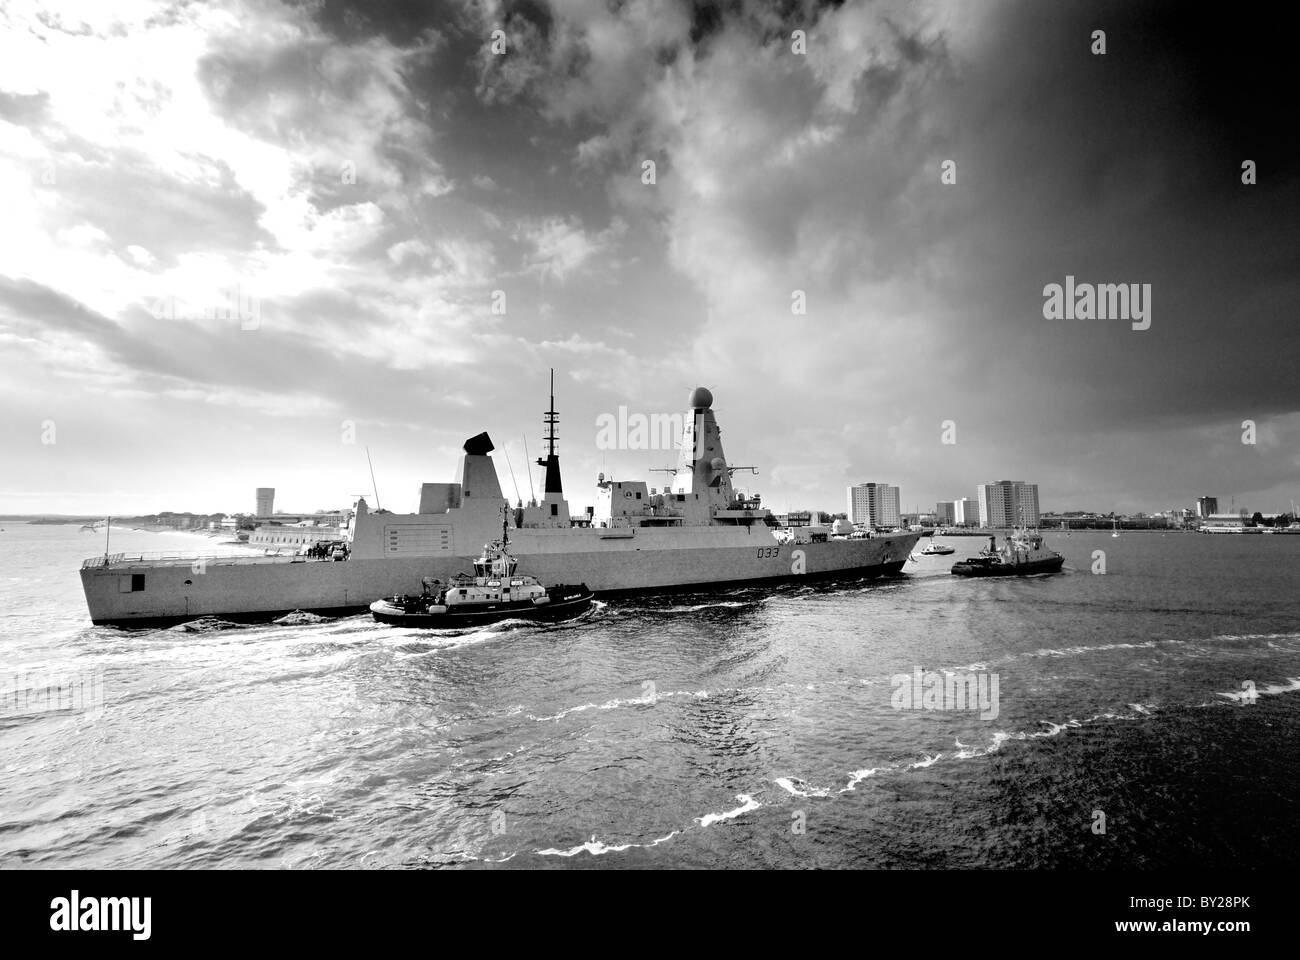 H.M.S Dauntless entering Portsmouth harbour - Stock Image